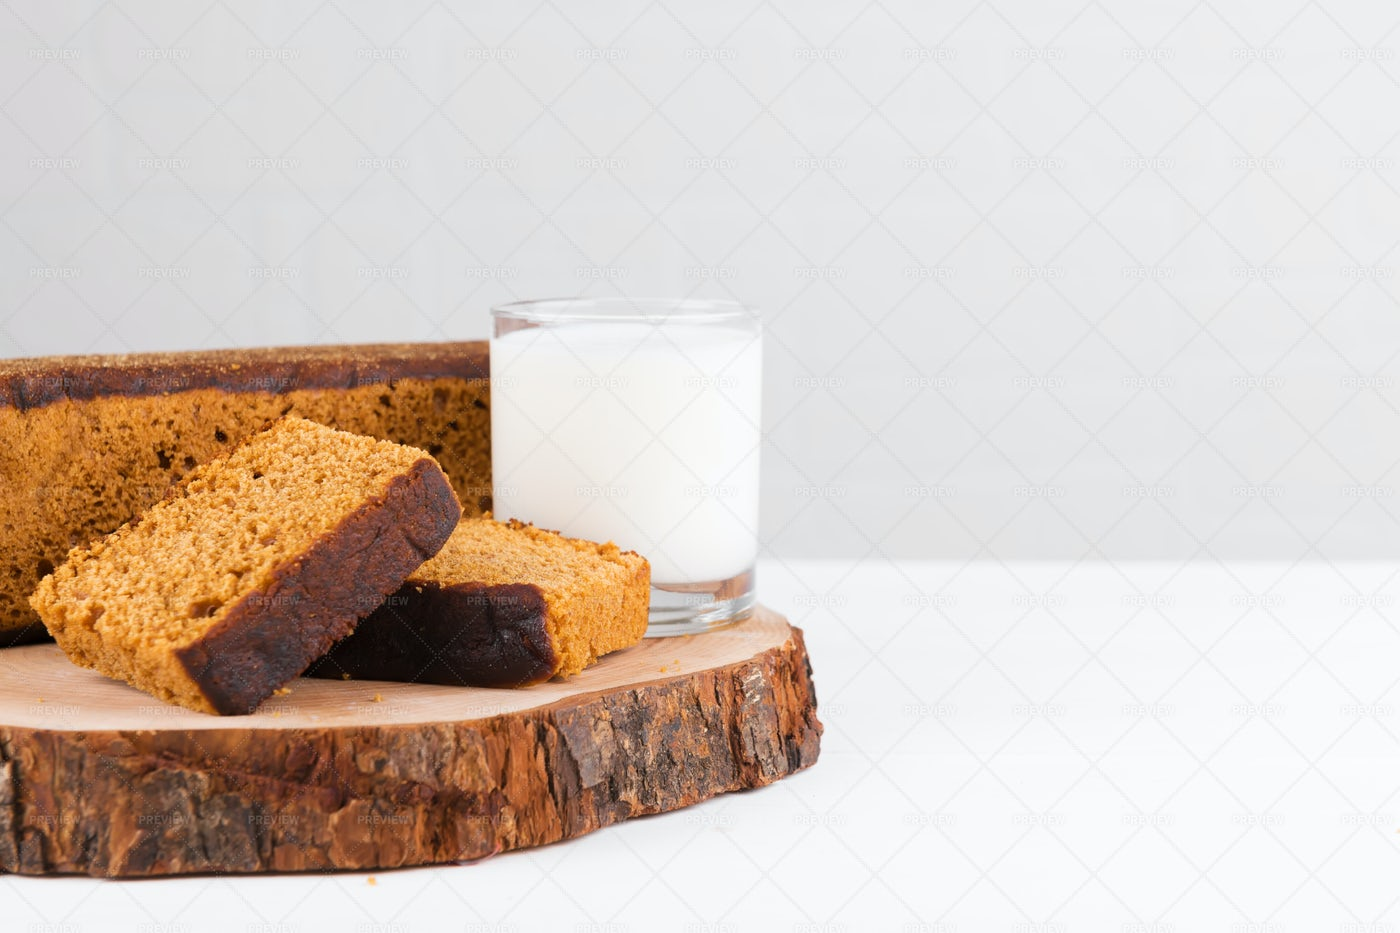 Gingerbread Cake With Milk: Stock Photos